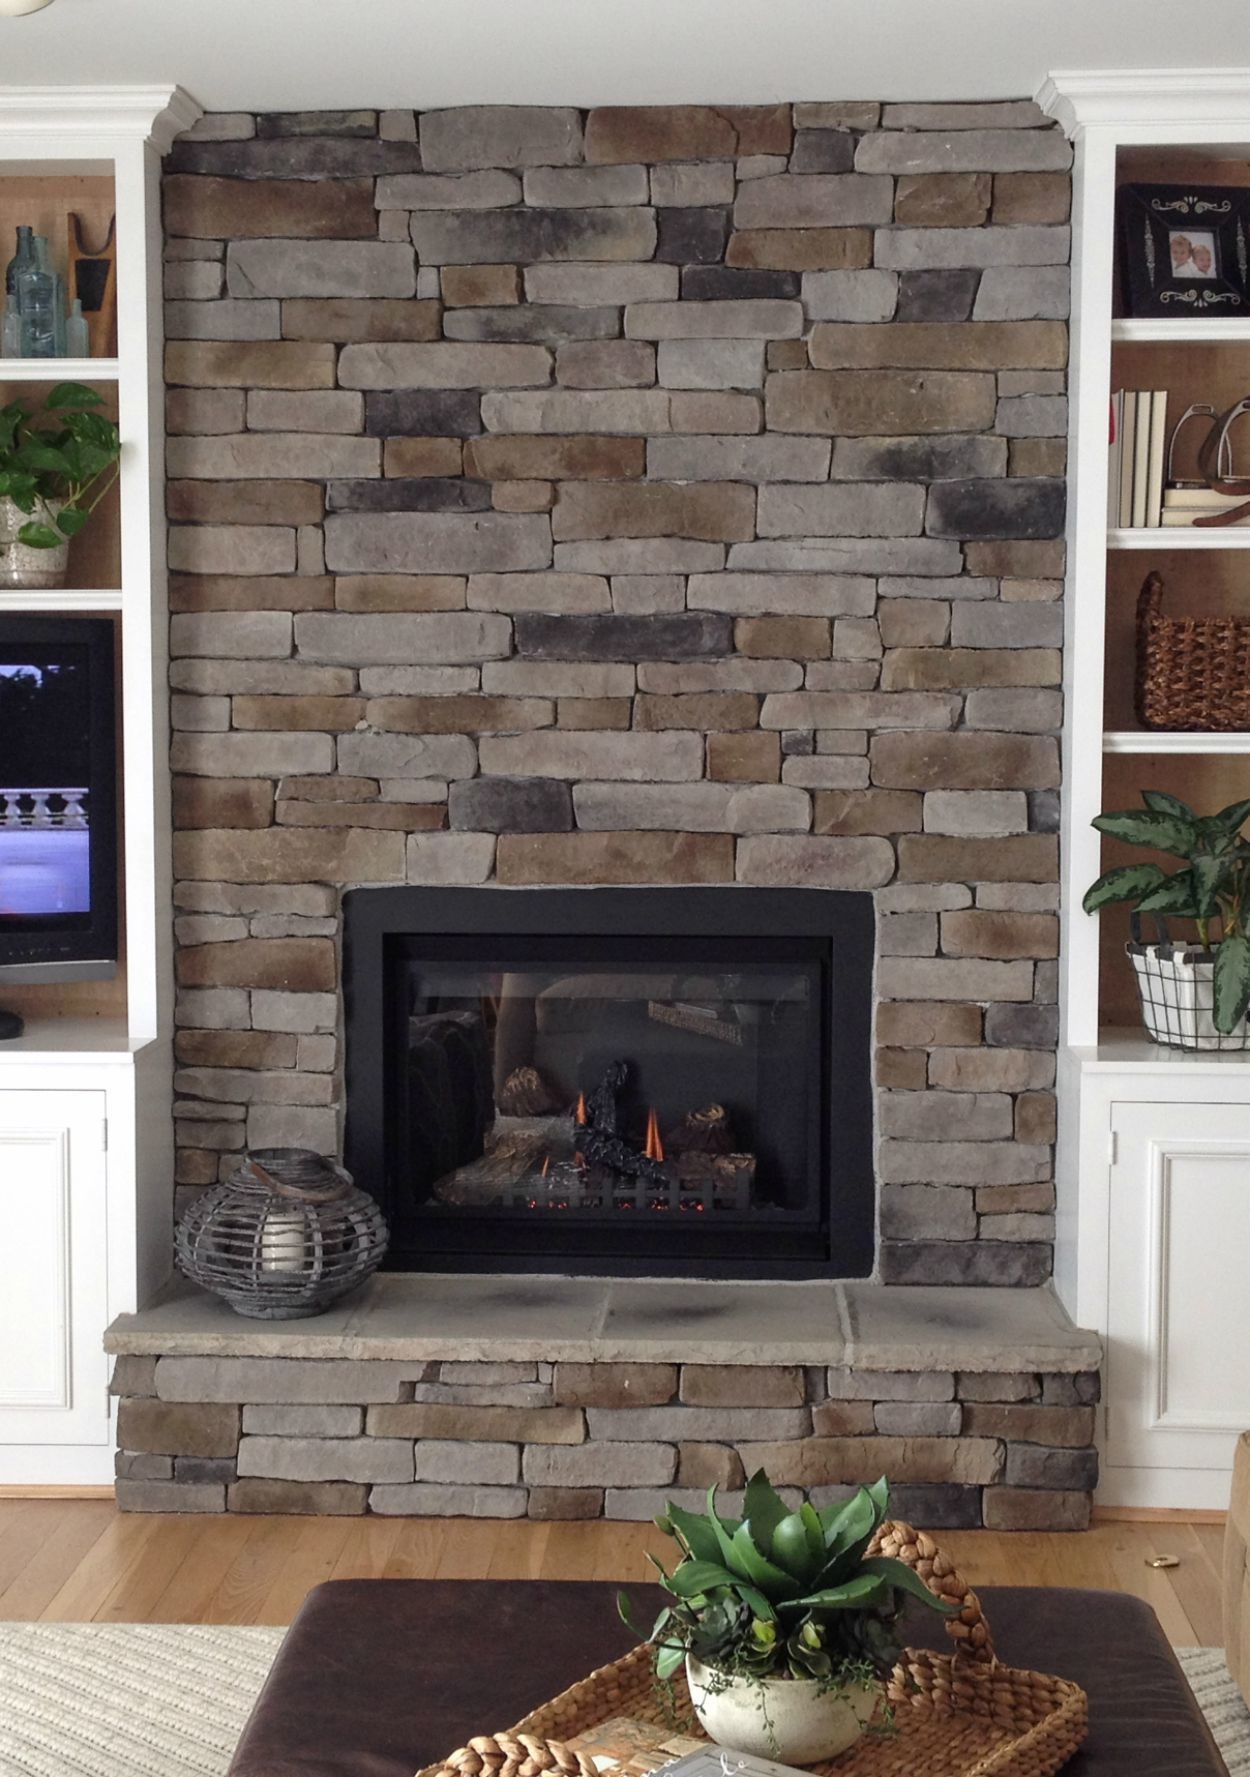 Perfect How To Create The Stacked Stone Fireplace Look On A Budget | Martha Stewart